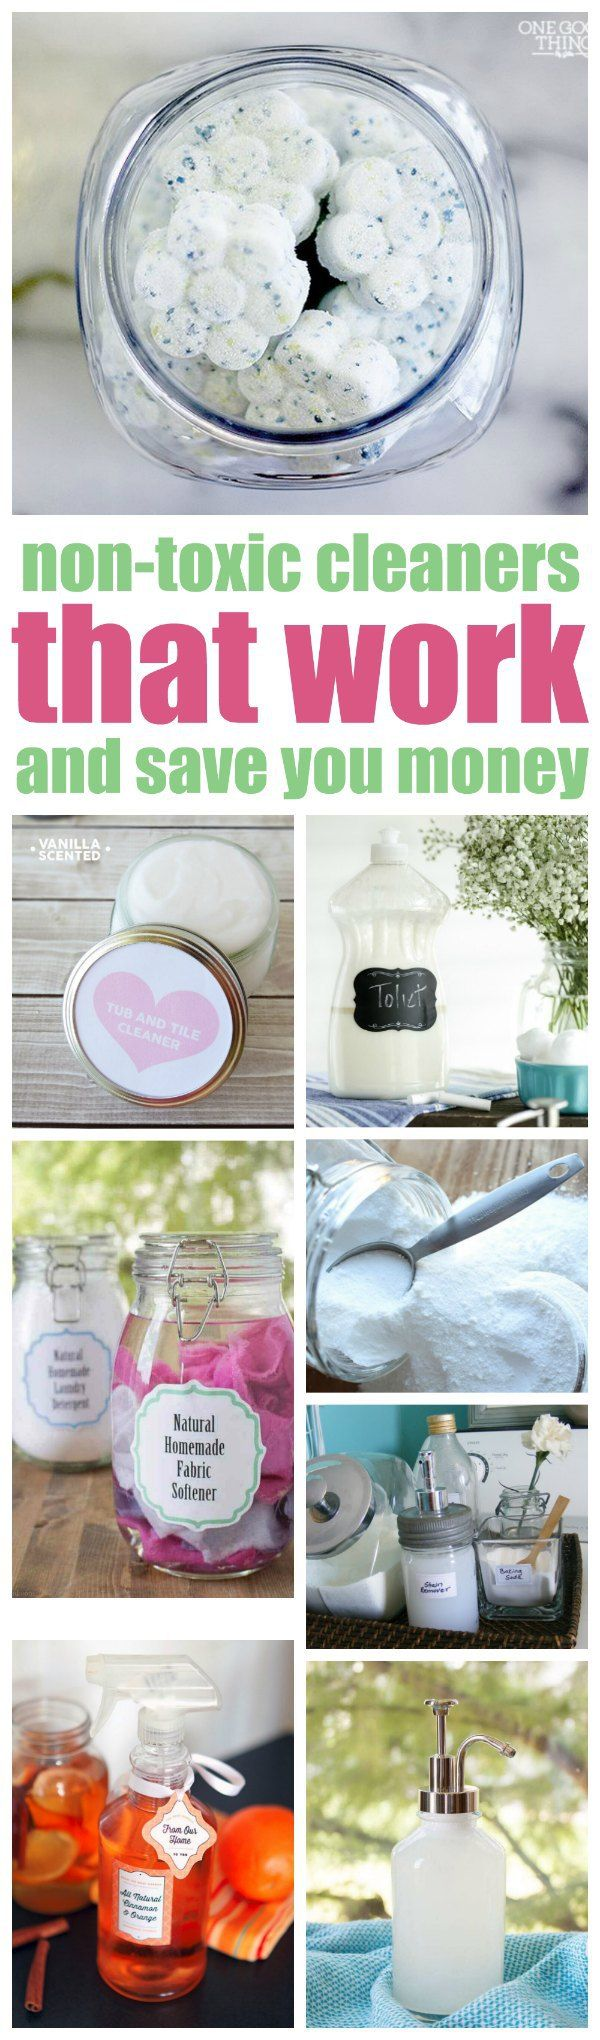 Safe cleaning products that work and save you money